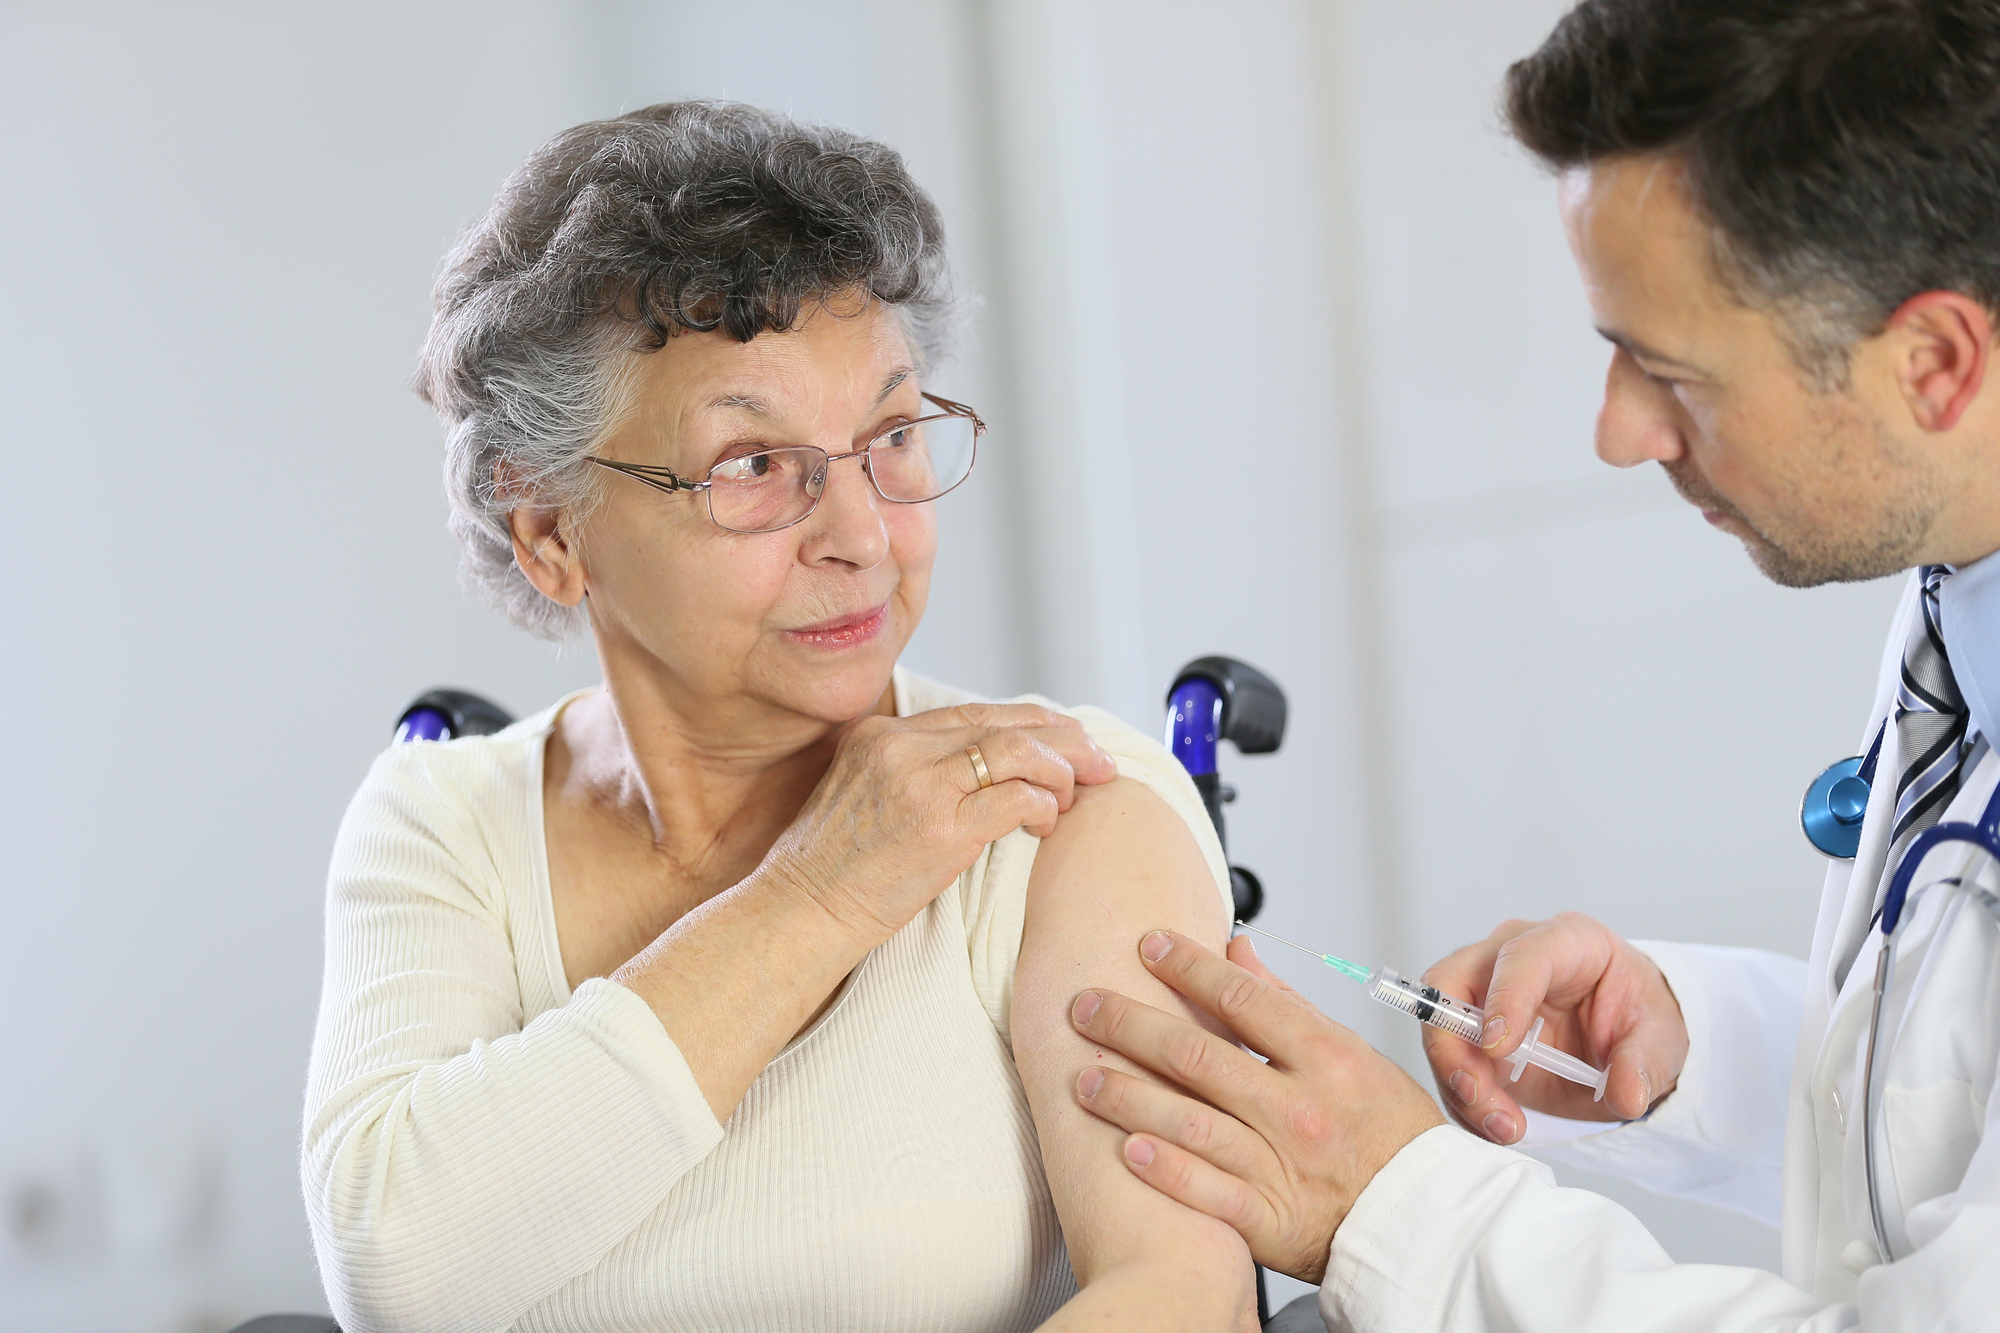 Can a Nursing Home Require Vaccination of Residents and Staff?